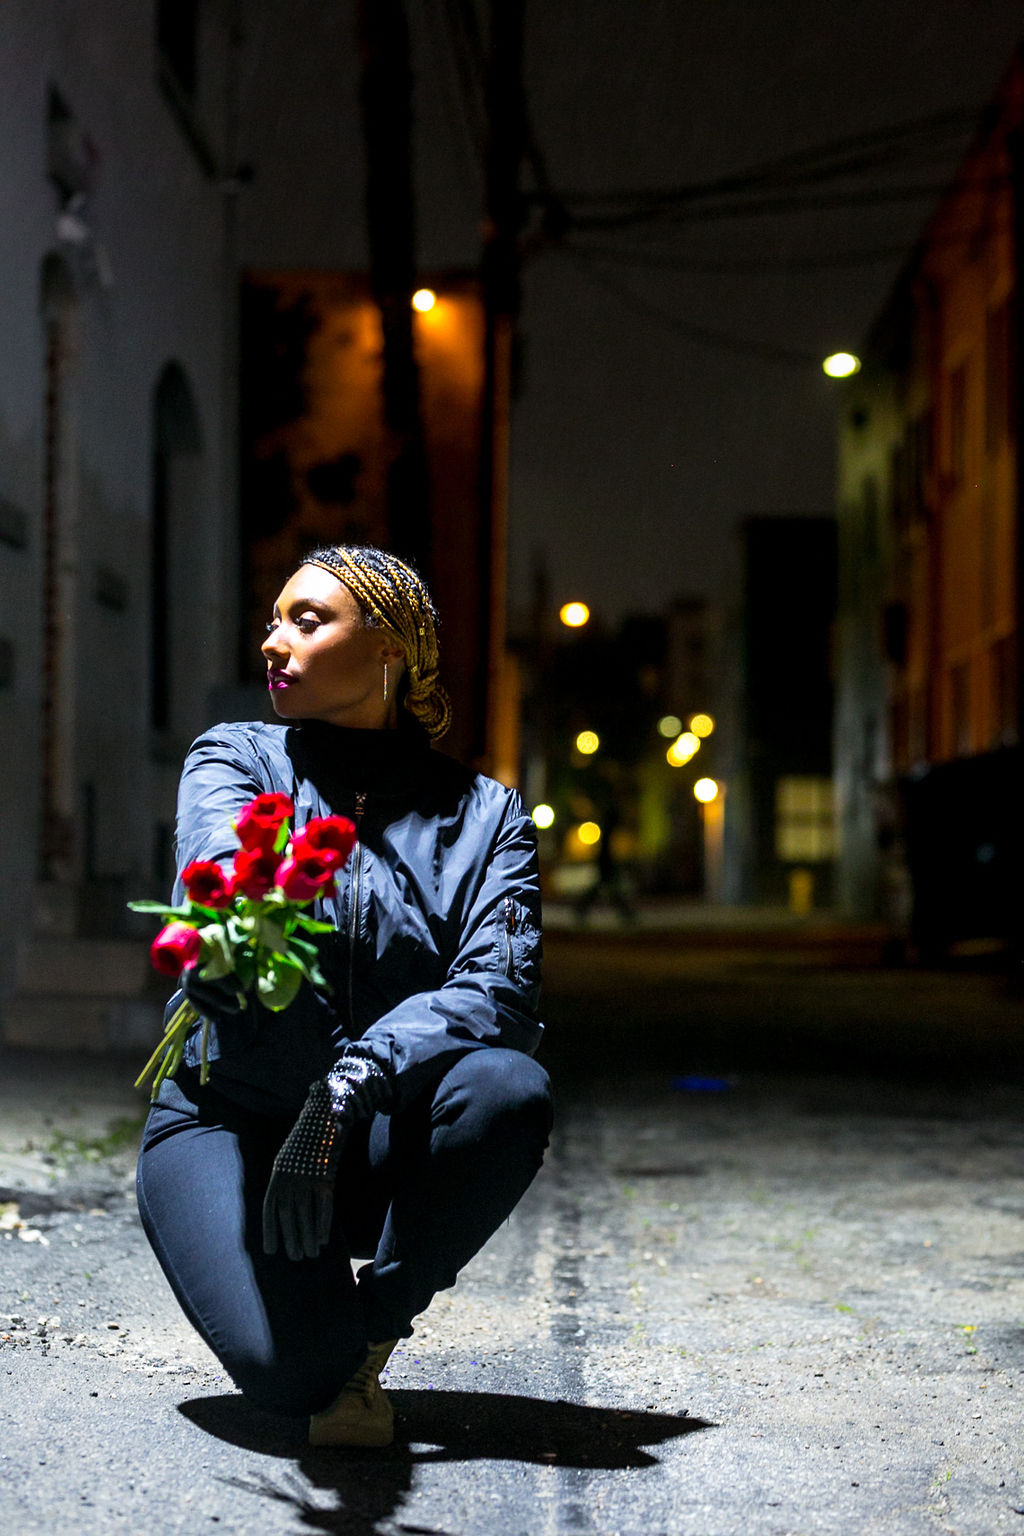 roses-night photography-lcm-rsee-wear who you are-xmmtt